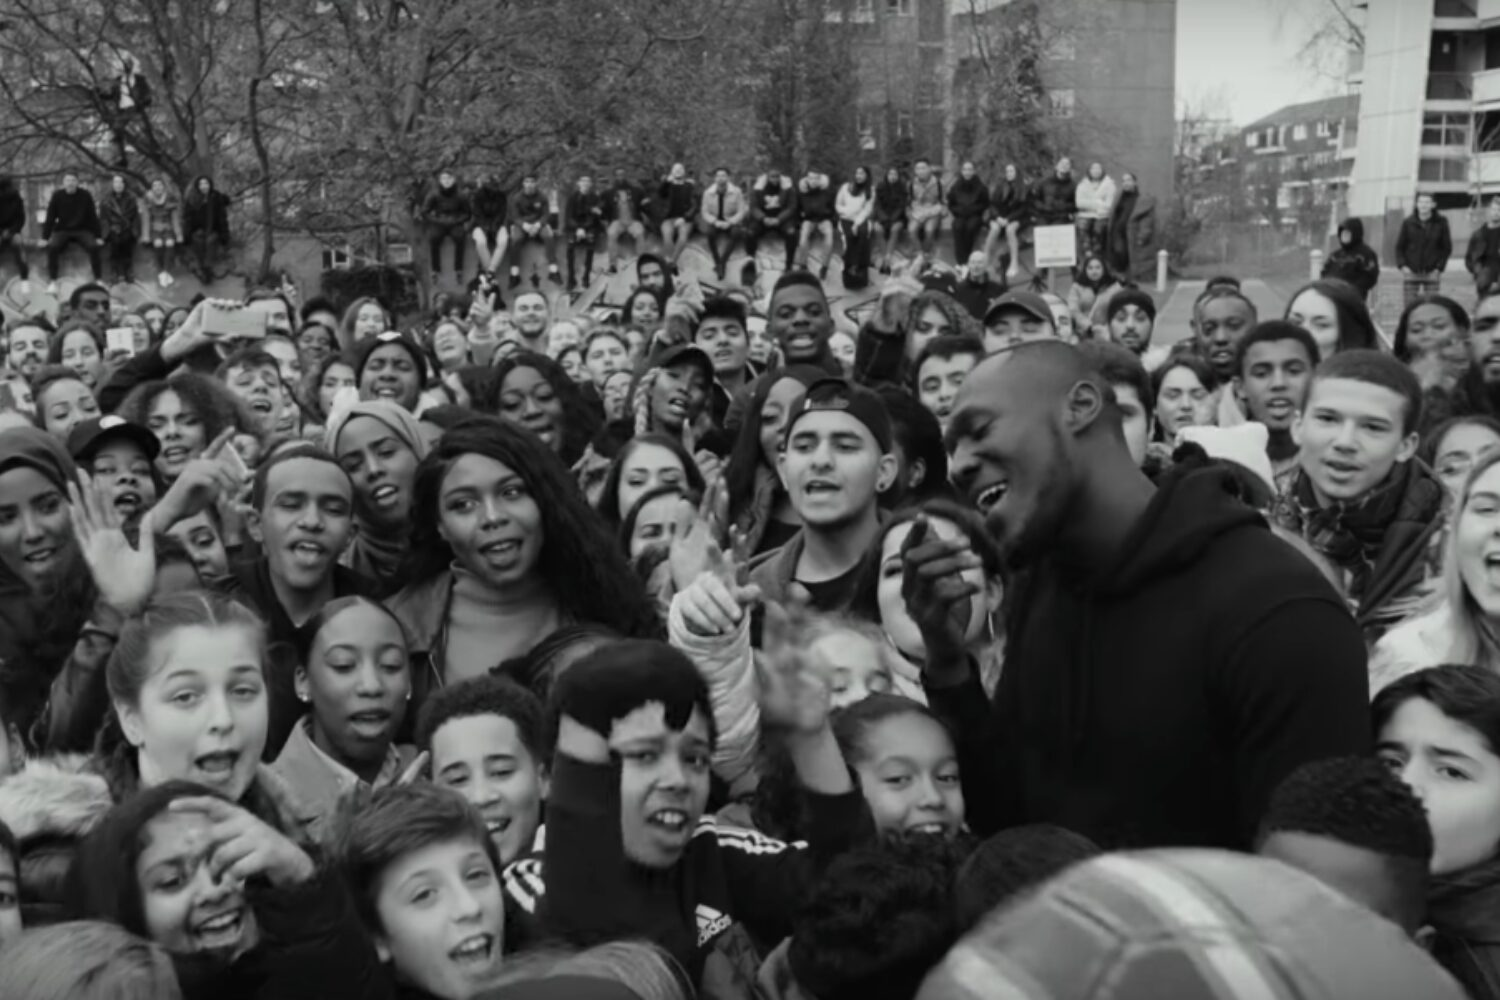 Stormzy shares video for 'Blinded By Your Grace Pt. 2'